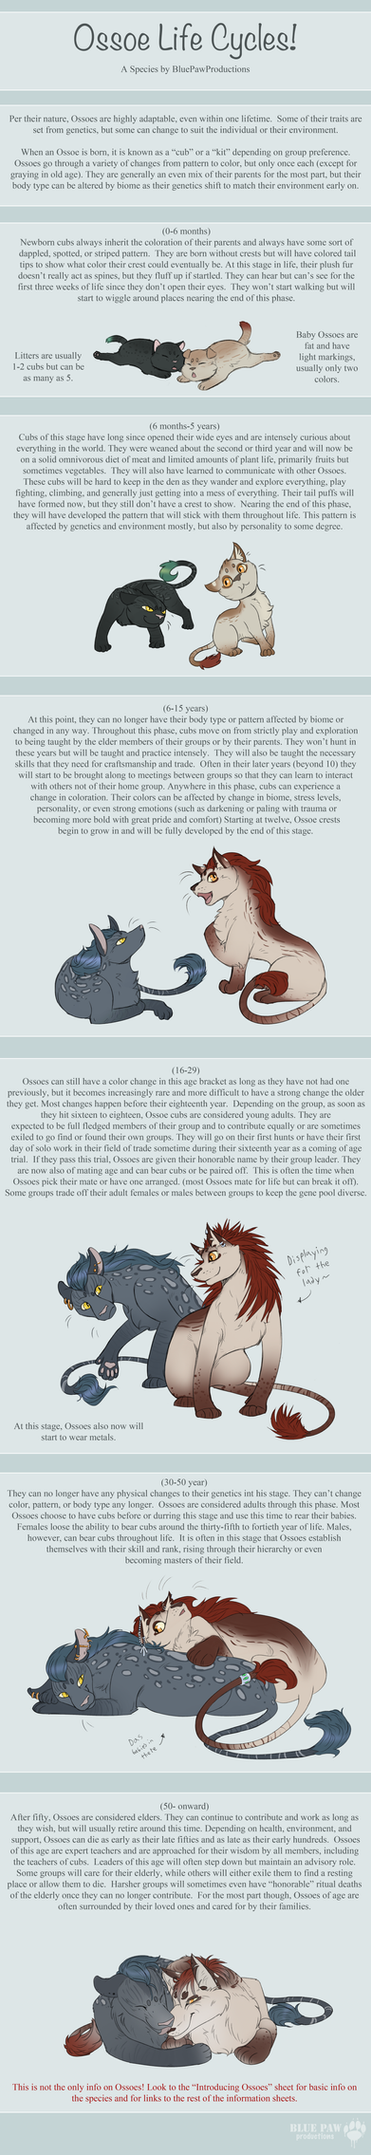 Ossoe Life Cycles! by BluePawProductions